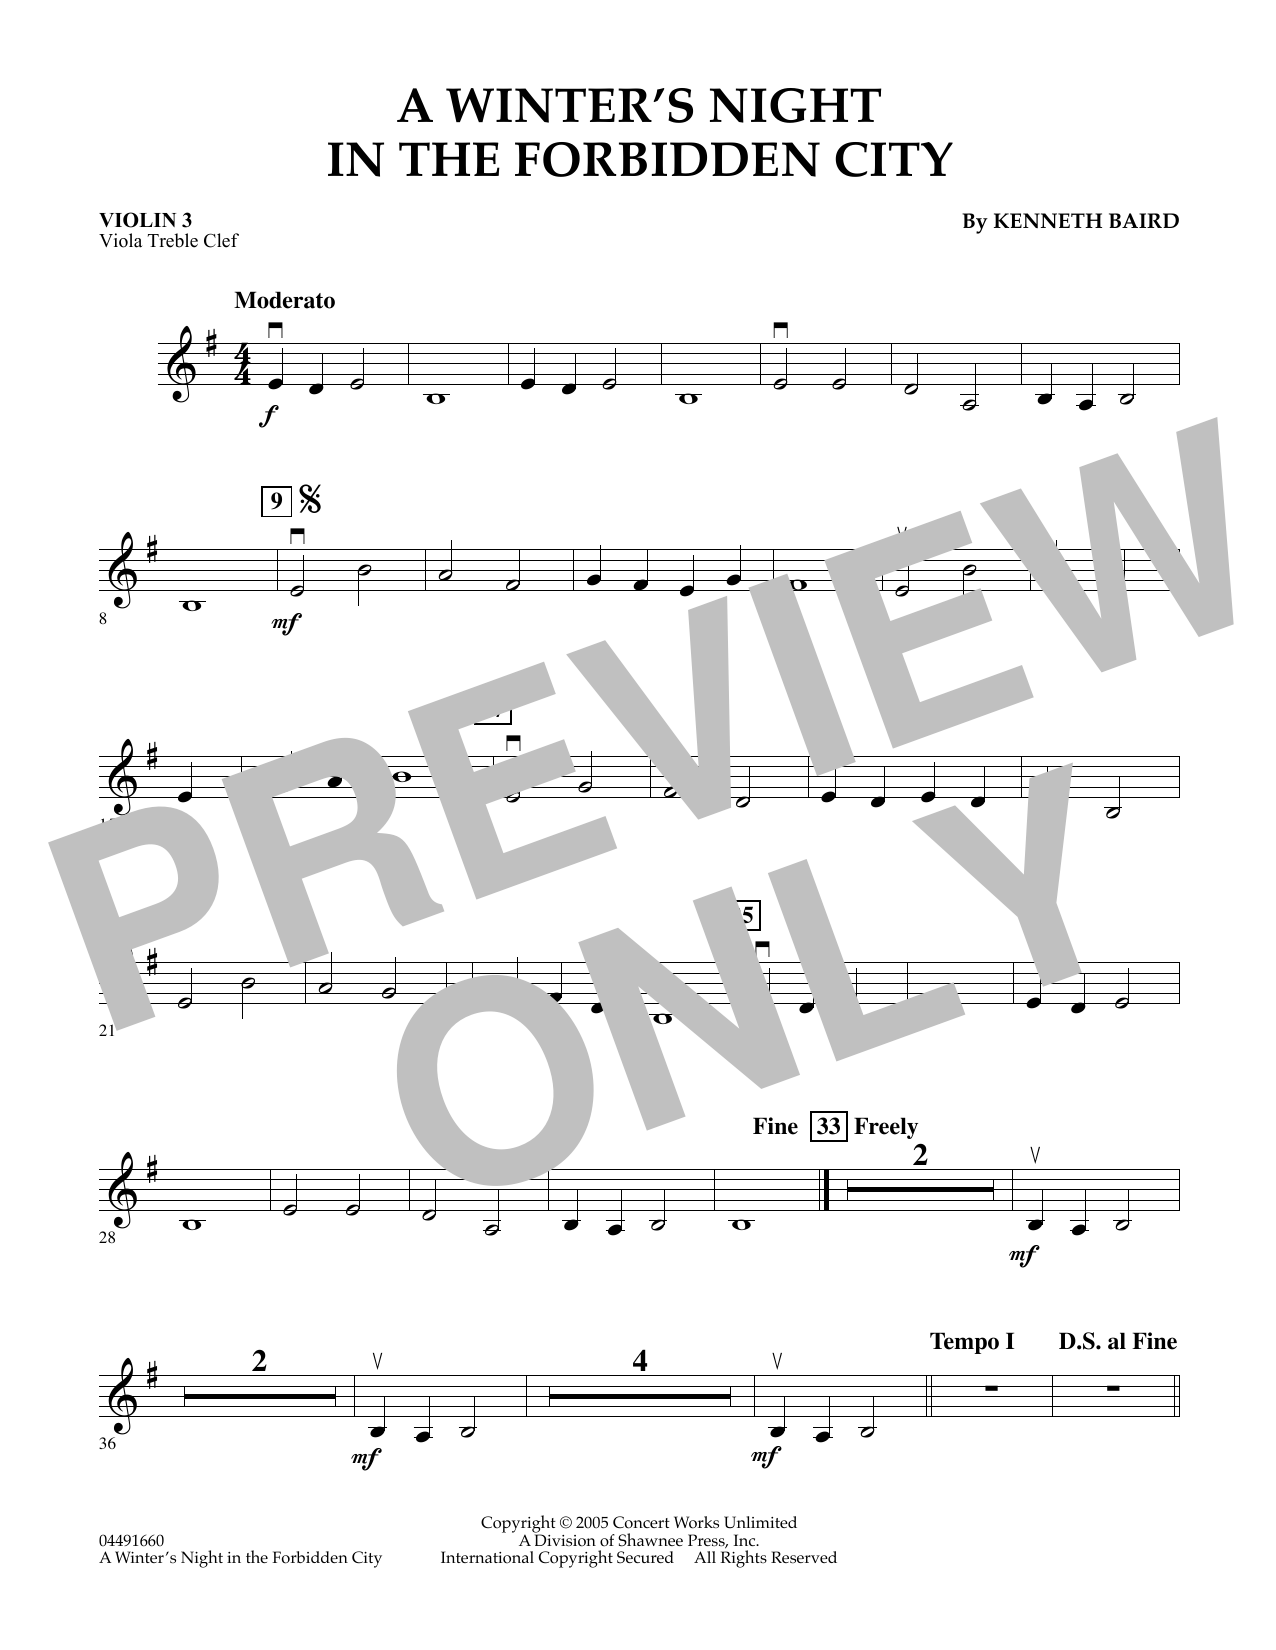 Kenneth Baird A Winter's Night in the Forbidden City - Violin 3 (Viola Treble Clef) sheet music notes and chords. Download Printable PDF.